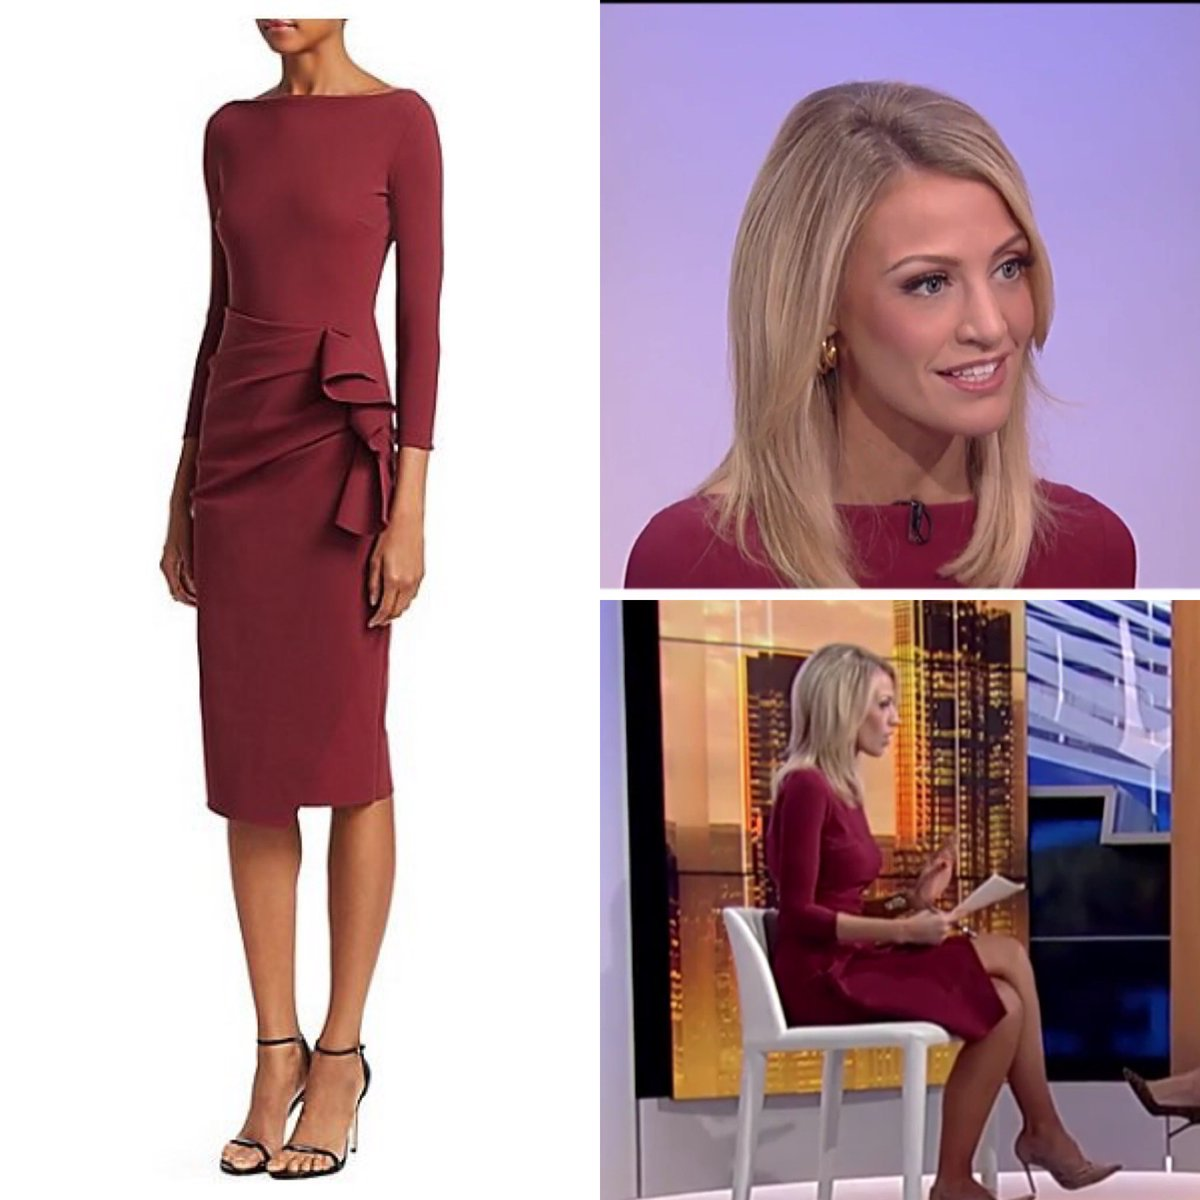 Carley Shimkus (@CarleyShimkus) wore a Chiara Boni 'Zelma' Side Ruffle Sheath dress this morning on #FoxandFriends - the dress is available at Saks.  #carleyshimkus #foxnews #foxnewsfashion  https://www.instagram.com/p/B38Ah68A1vc/?igshid=1kgnho3698zri …pic.twitter.com/qH5HqEHbgx